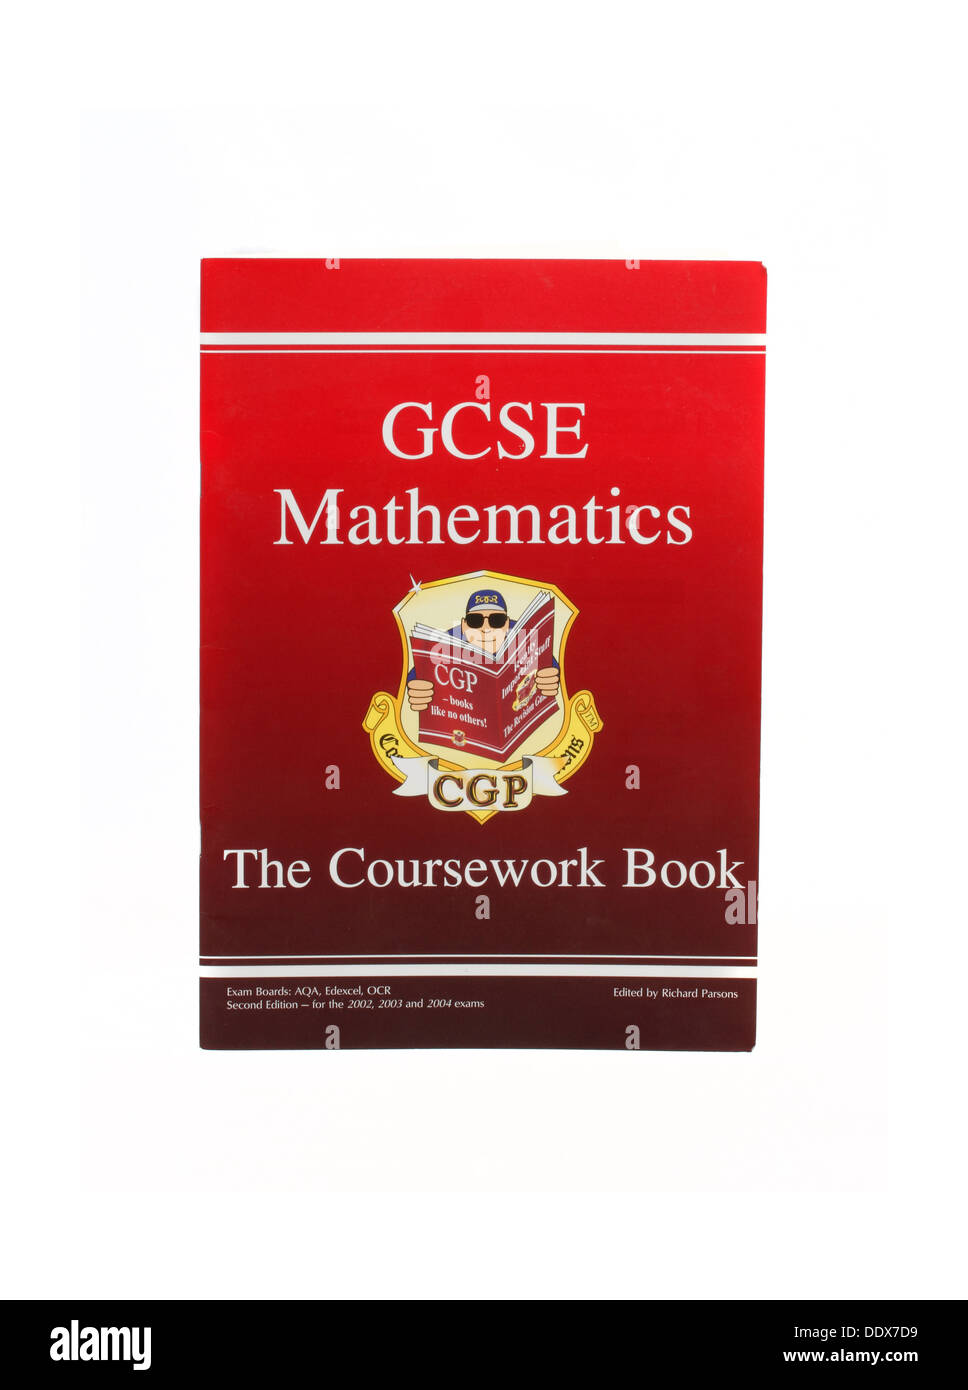 GCSE Mathematics - The Coursework Book - Stock Image